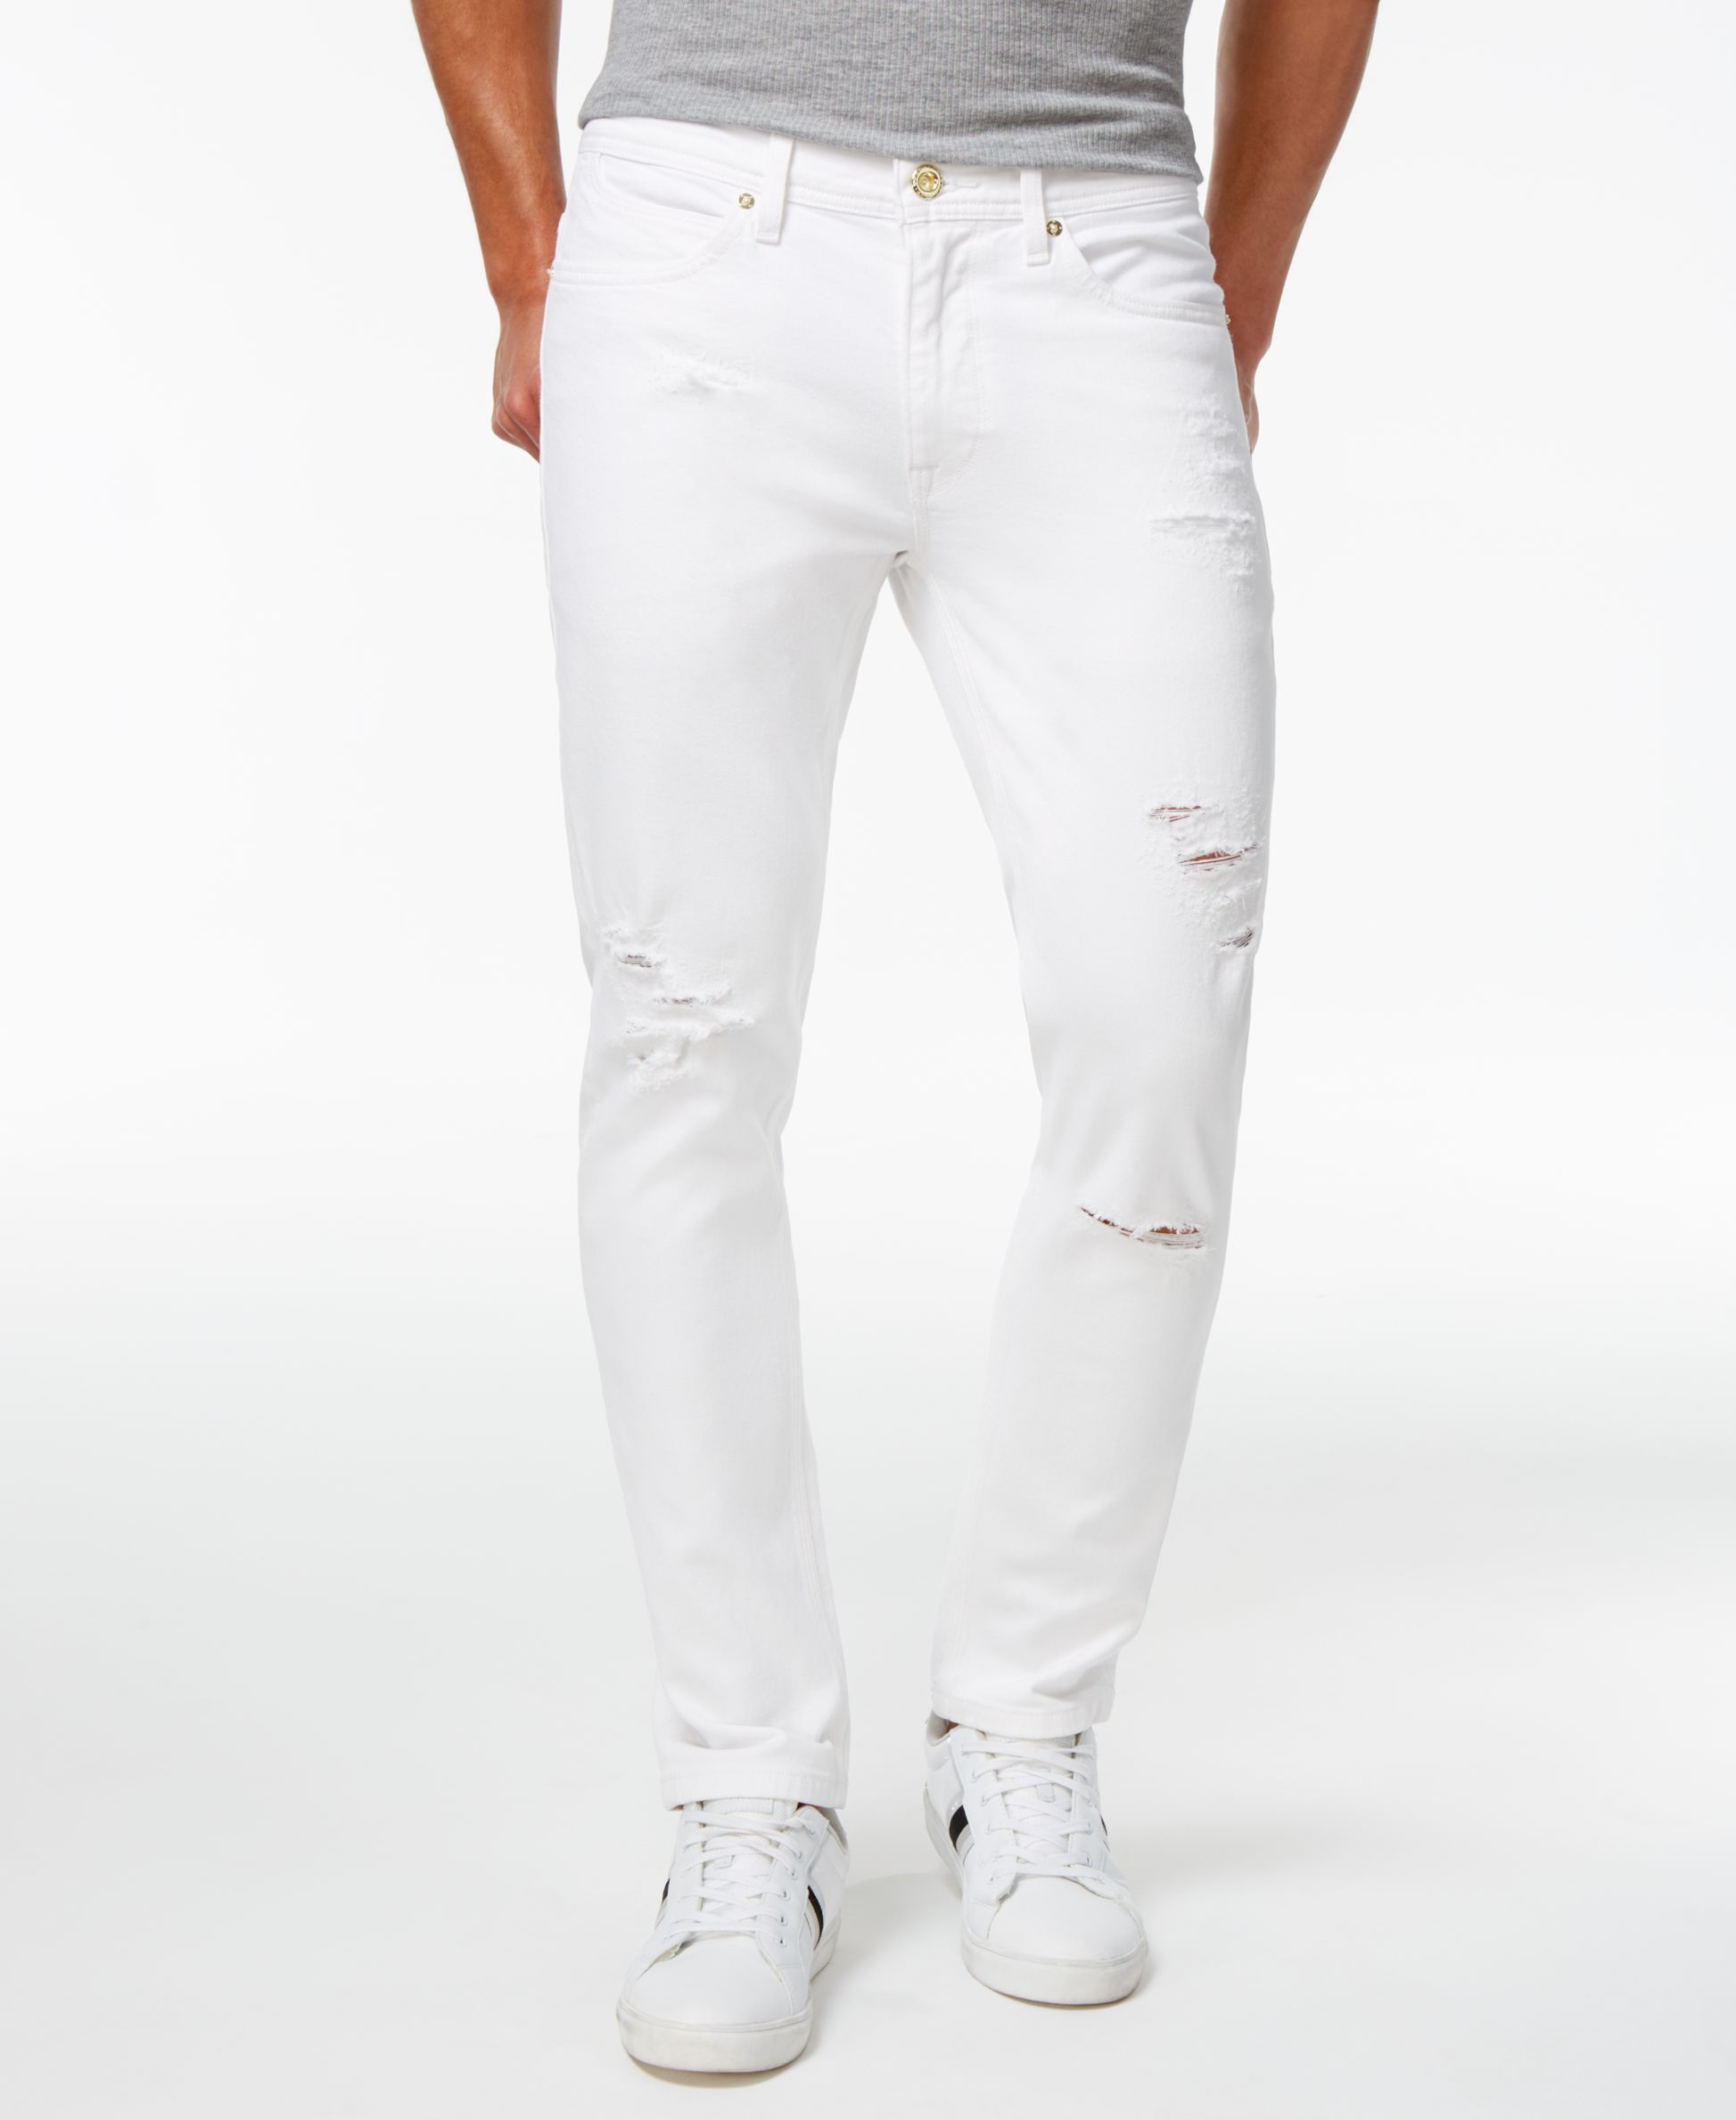 ad8c20e51f7 Sean John Men s Essex Slim-Fit Stretch White Destroyed Jeans ...